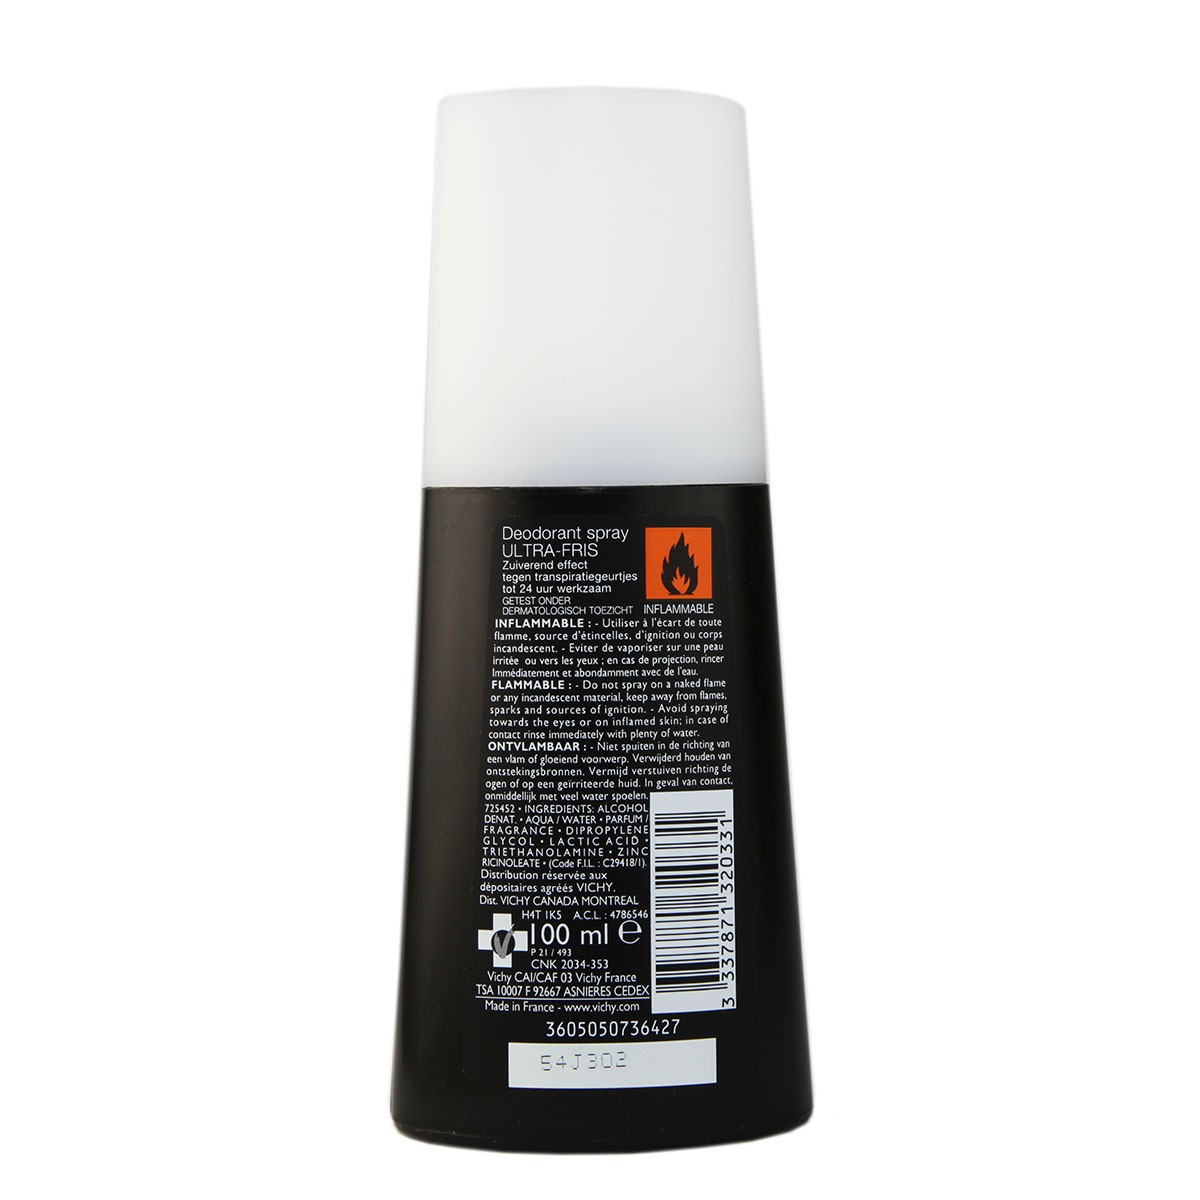 Vichy Homme Ultra Refreshing Deodorant Spray